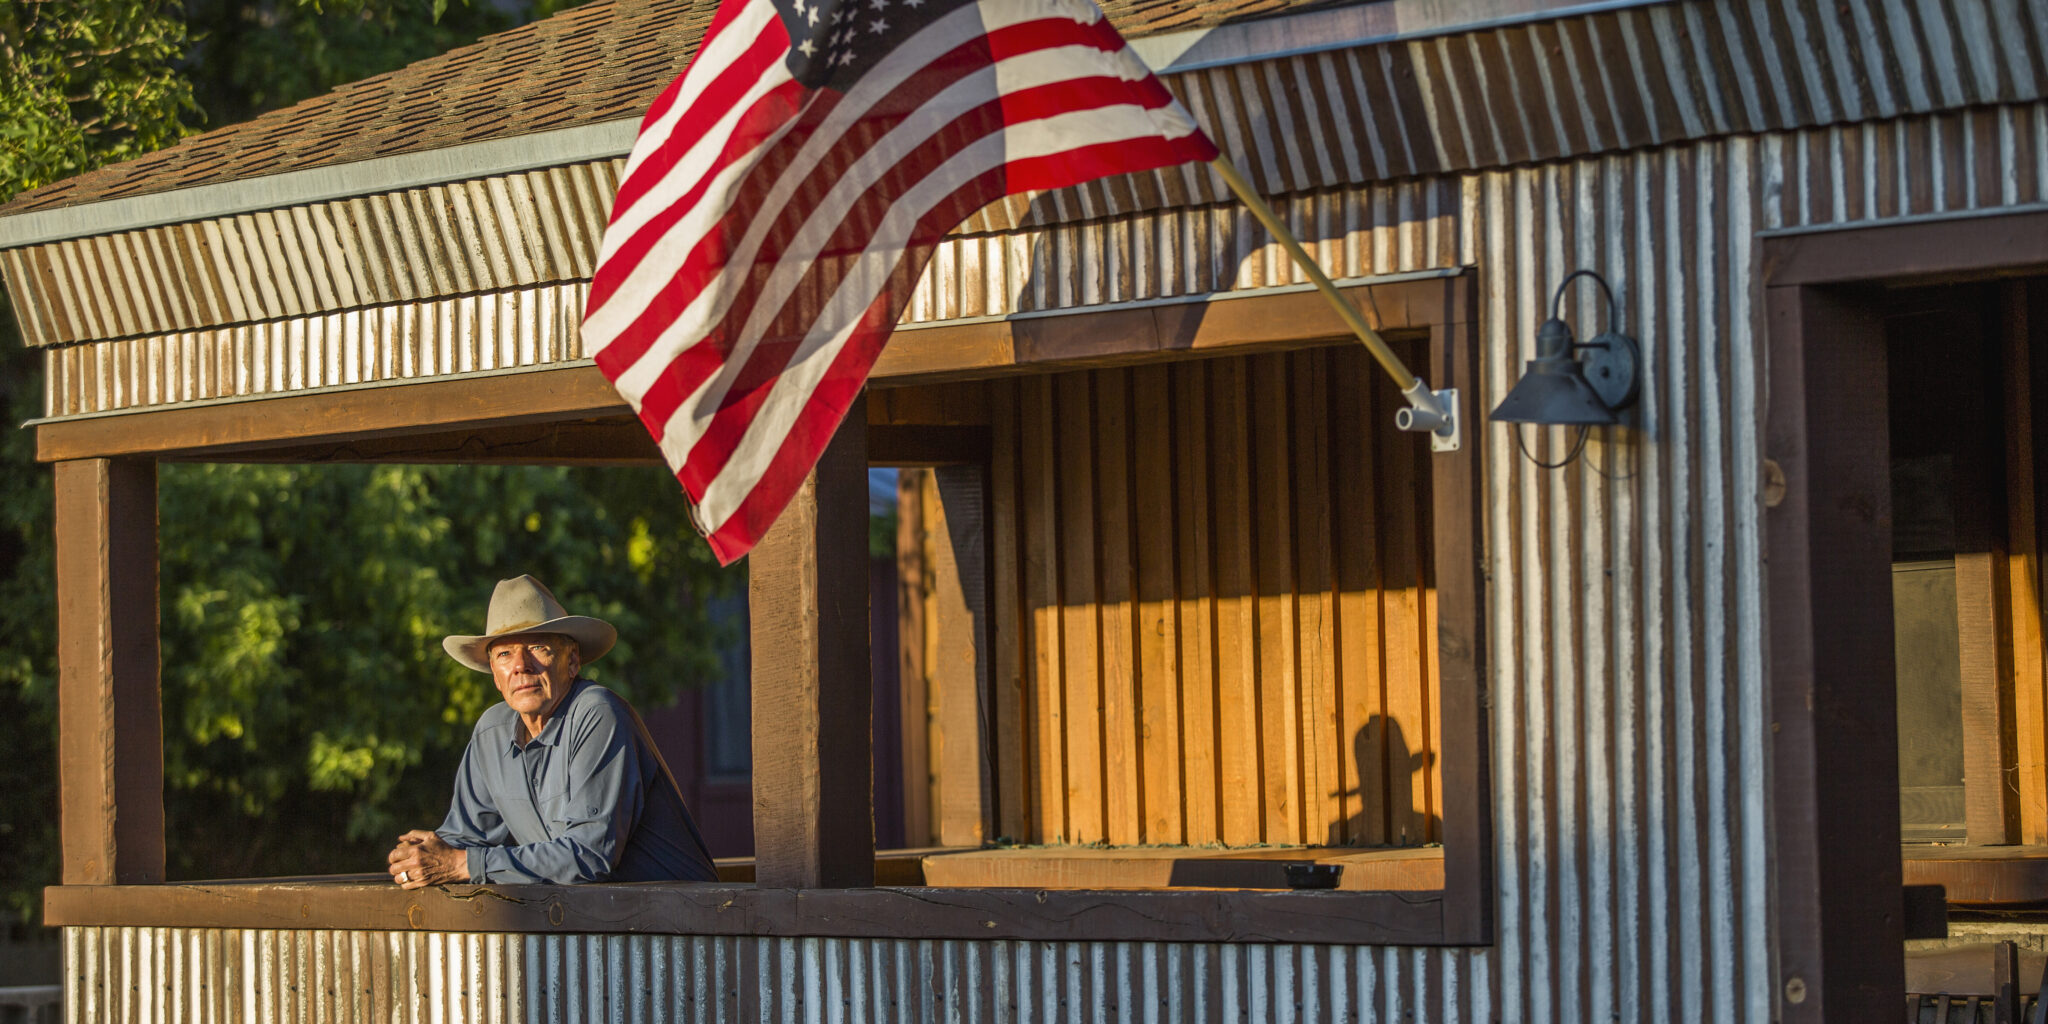 Mature cowboy on porch with American flag